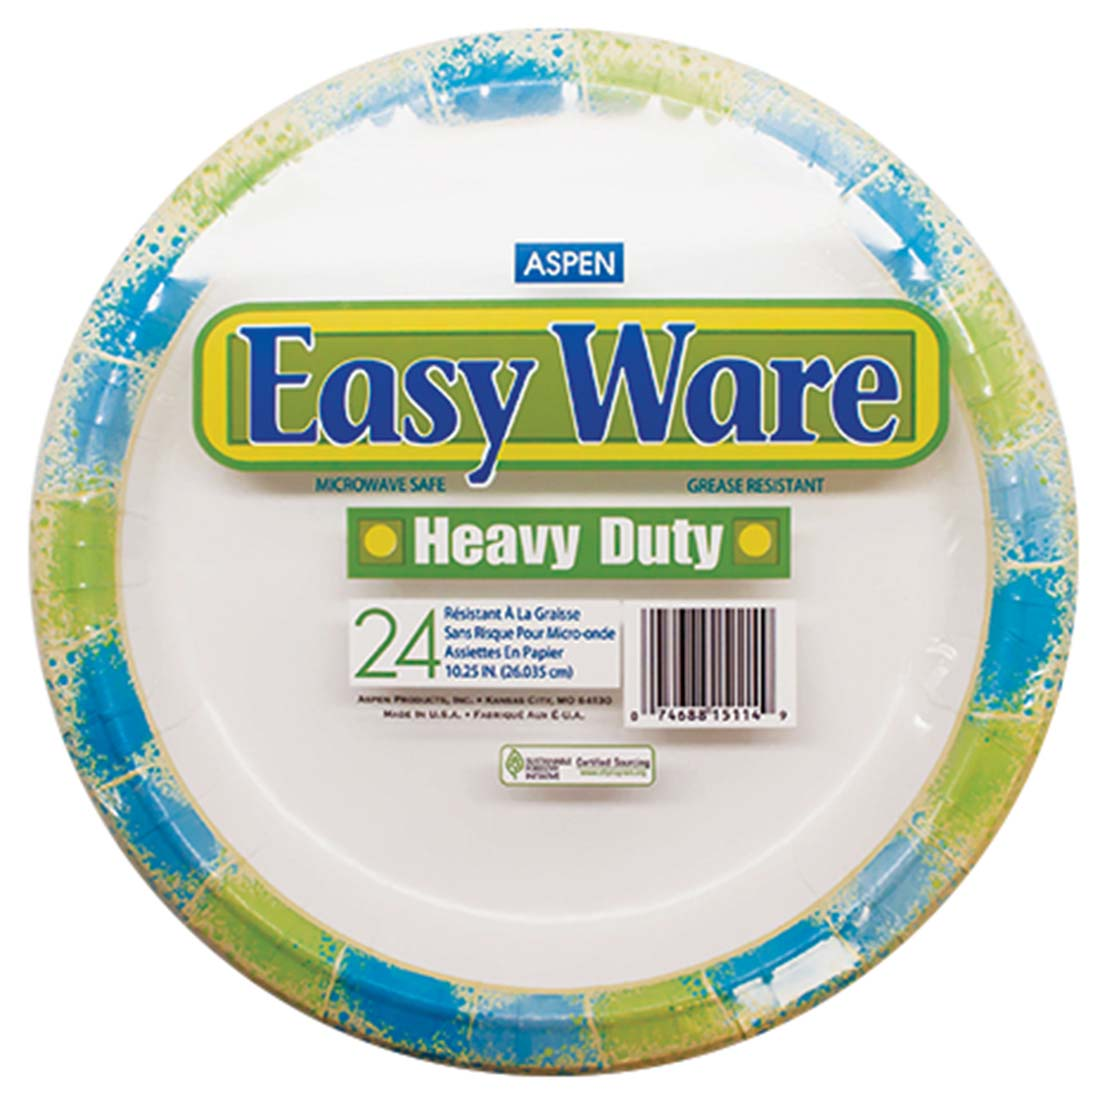 EASY WARE PRINT DESIGN 10.25  24CT HEAVY DUTY PAPER PLATE MICROWAVE SAFE.  sc 1 st  Pride Products & Pride Products